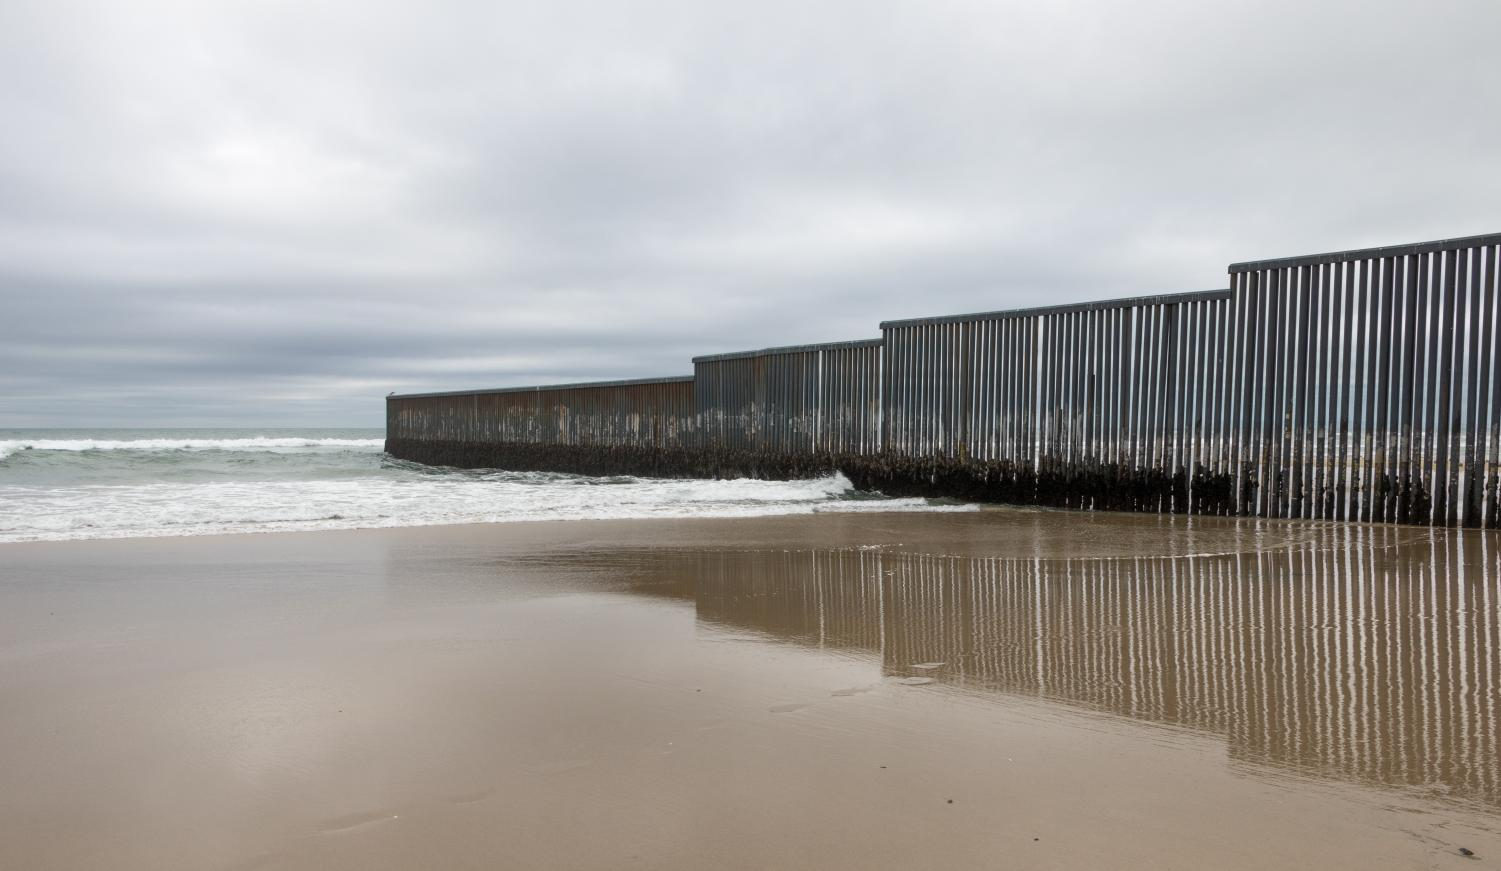 The Mexico- United States border wall in Tijuana, Mexico.